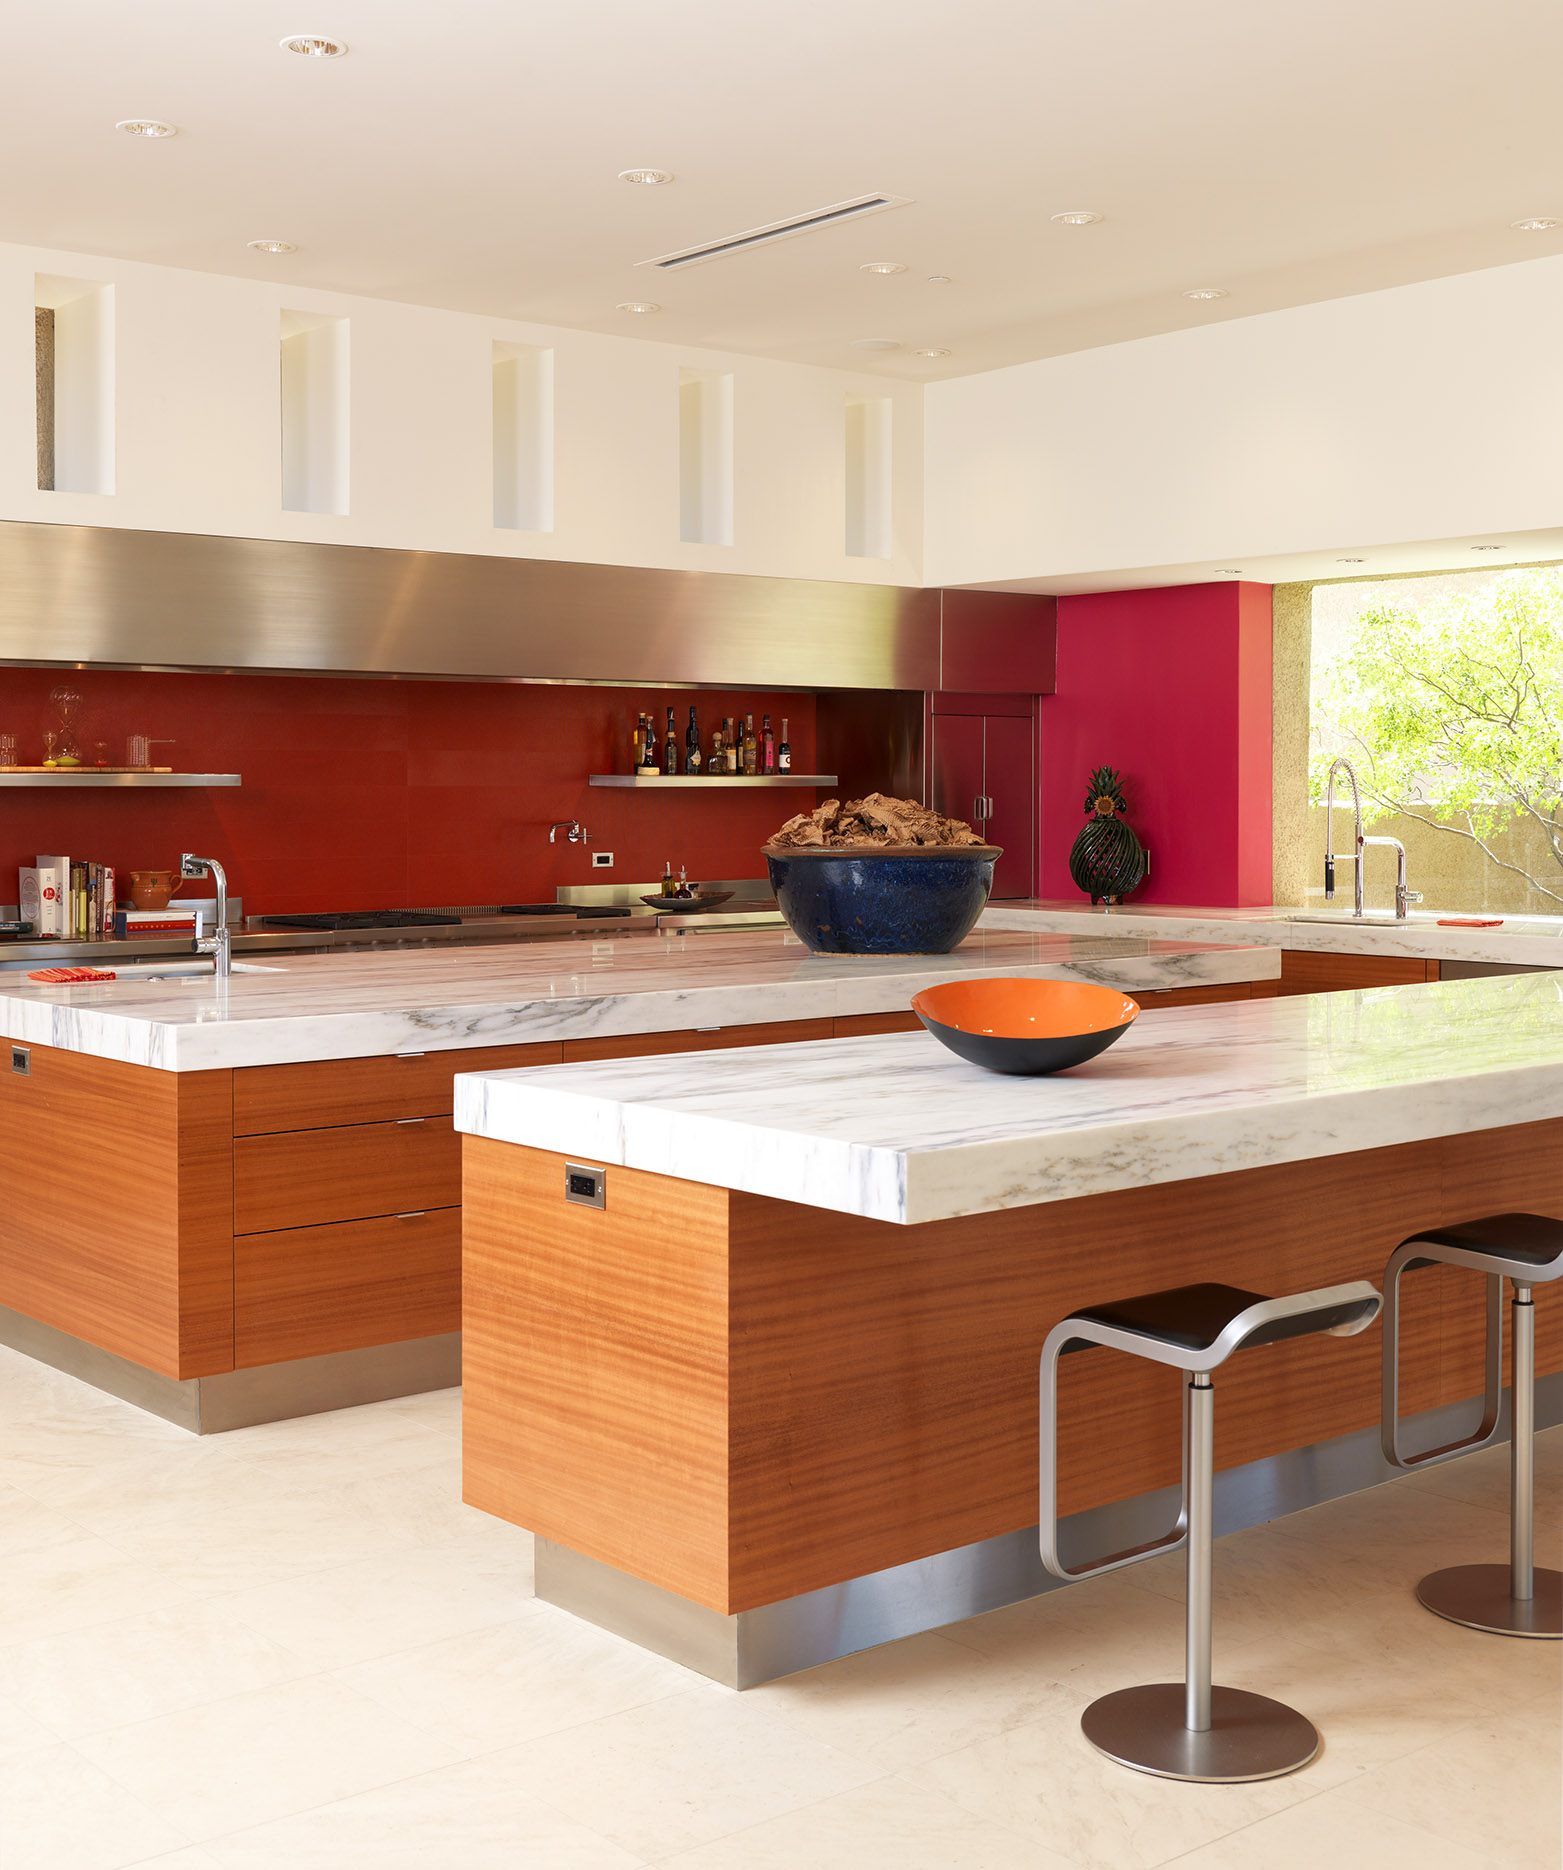 jeff-green-modern-kitchen